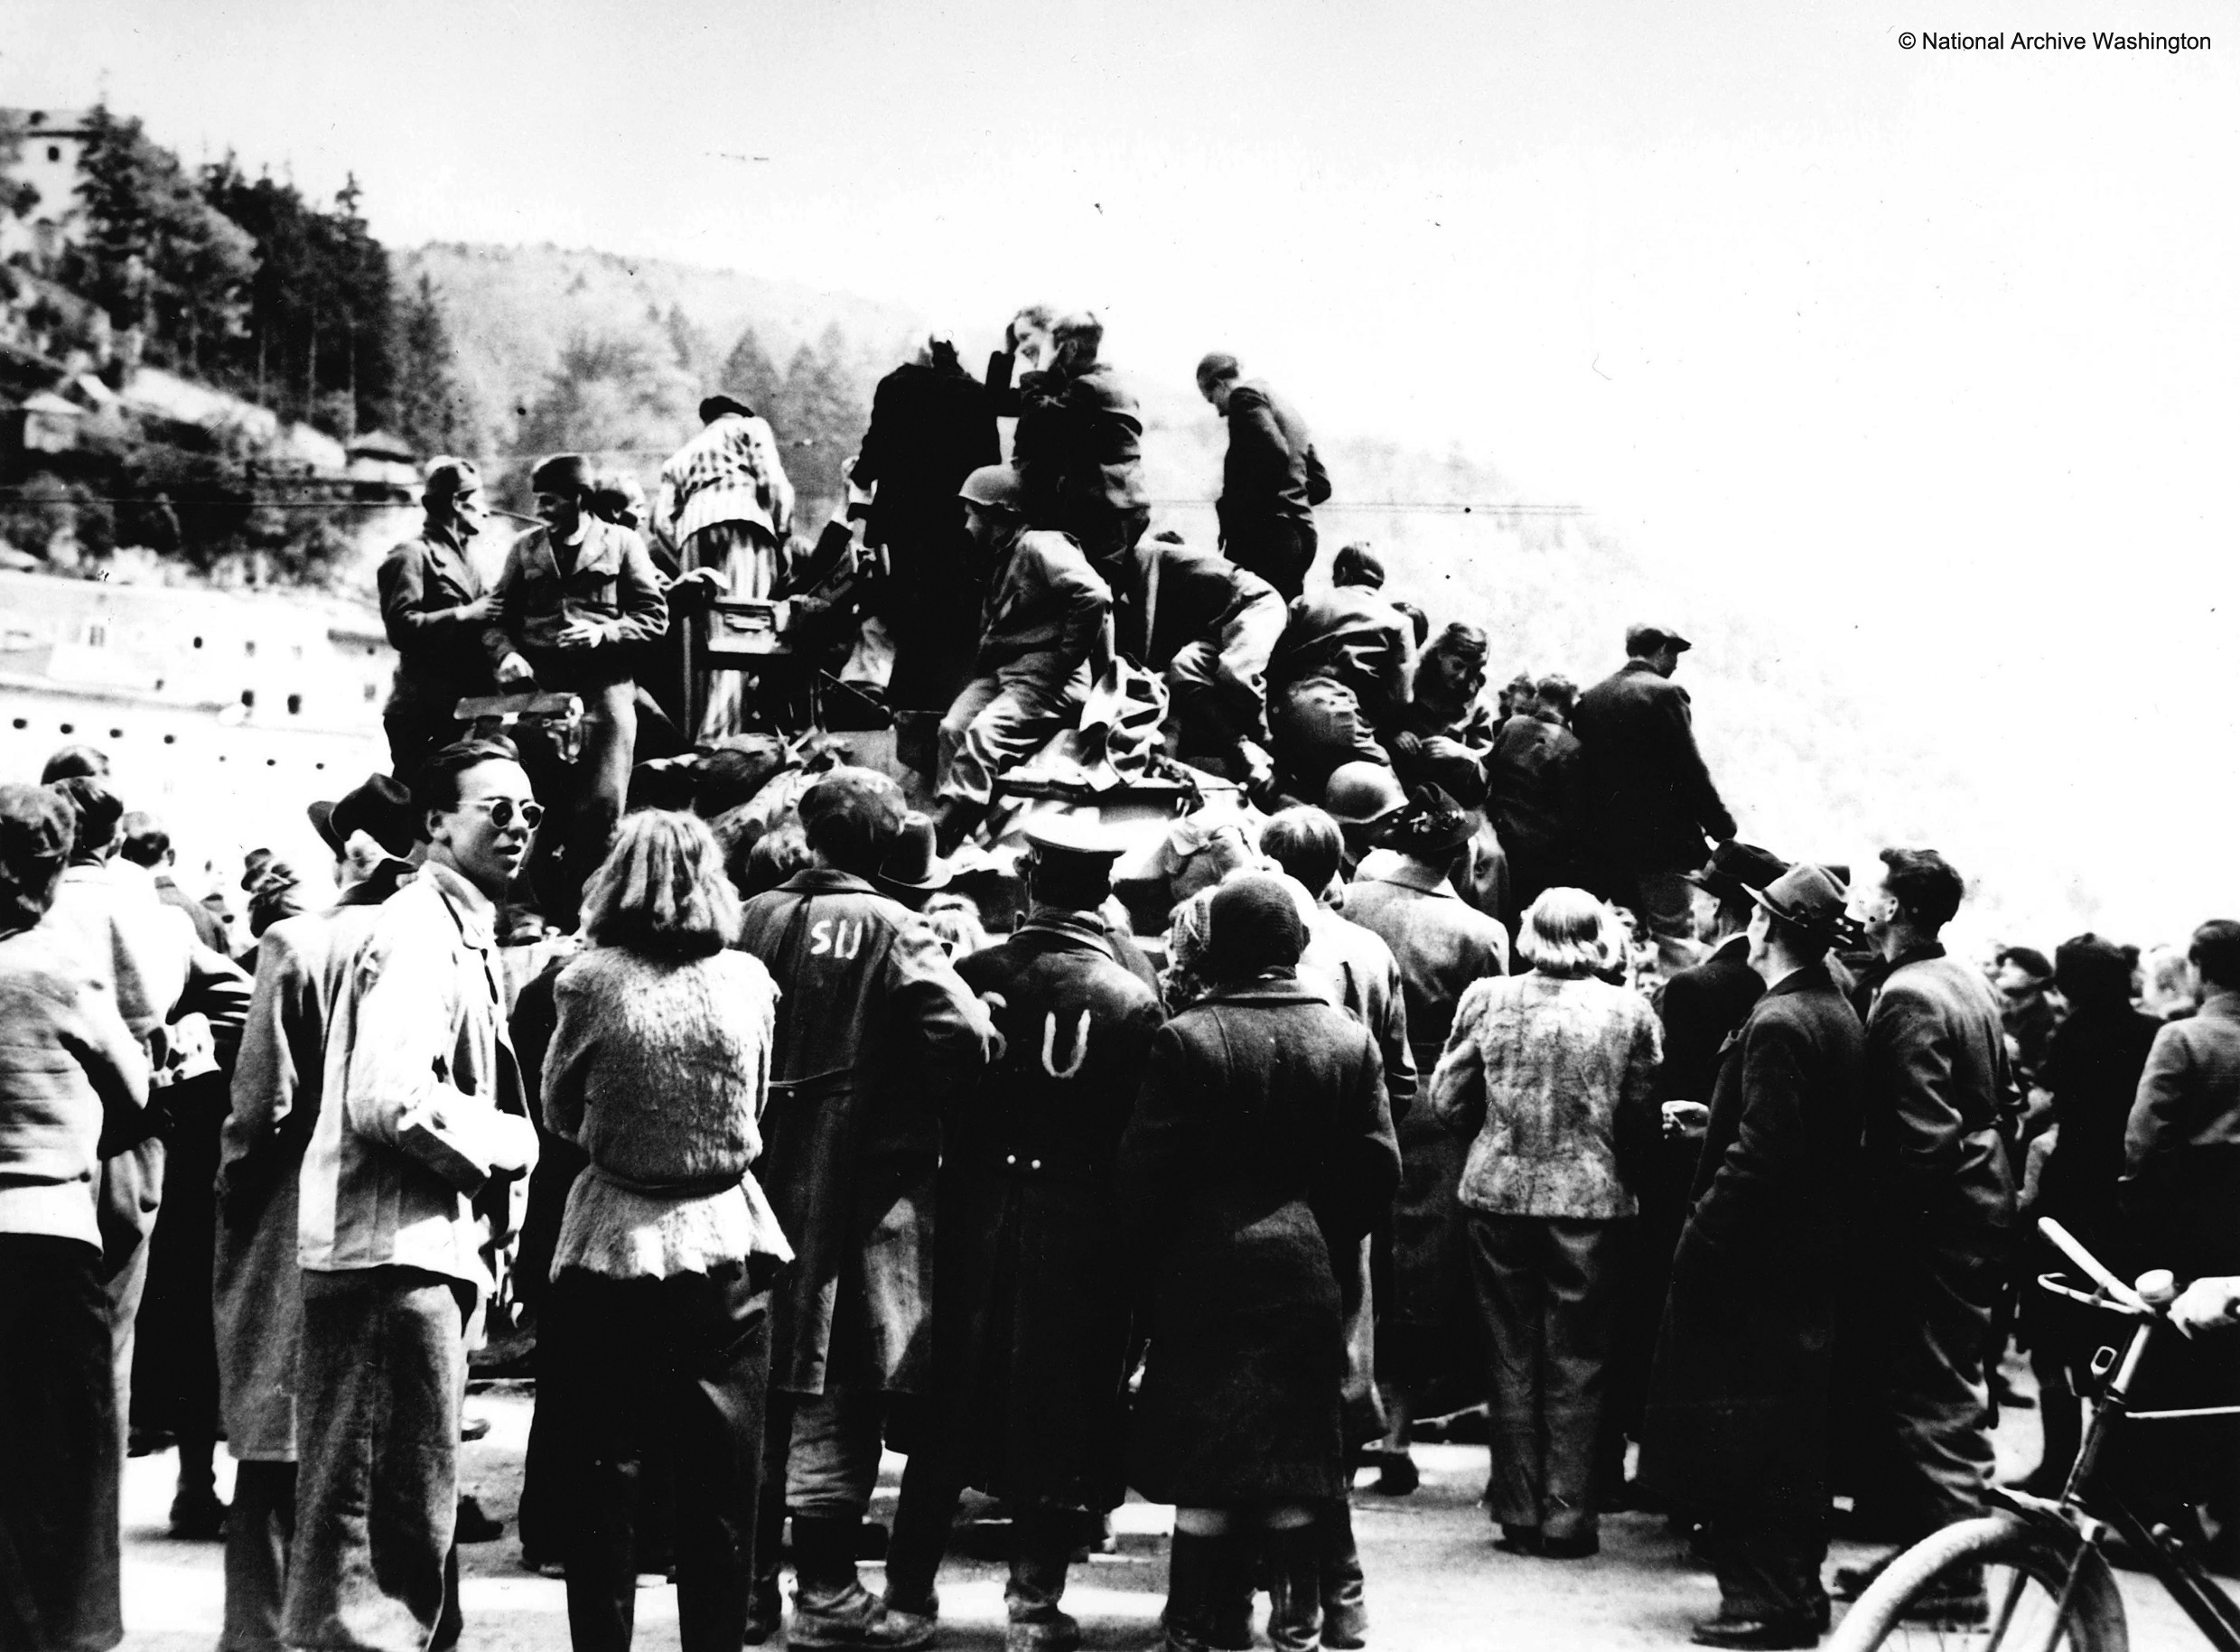 Liberation of Salzburg by U.S. troops on May 4, 1945<br>Photo: National Archive Washington